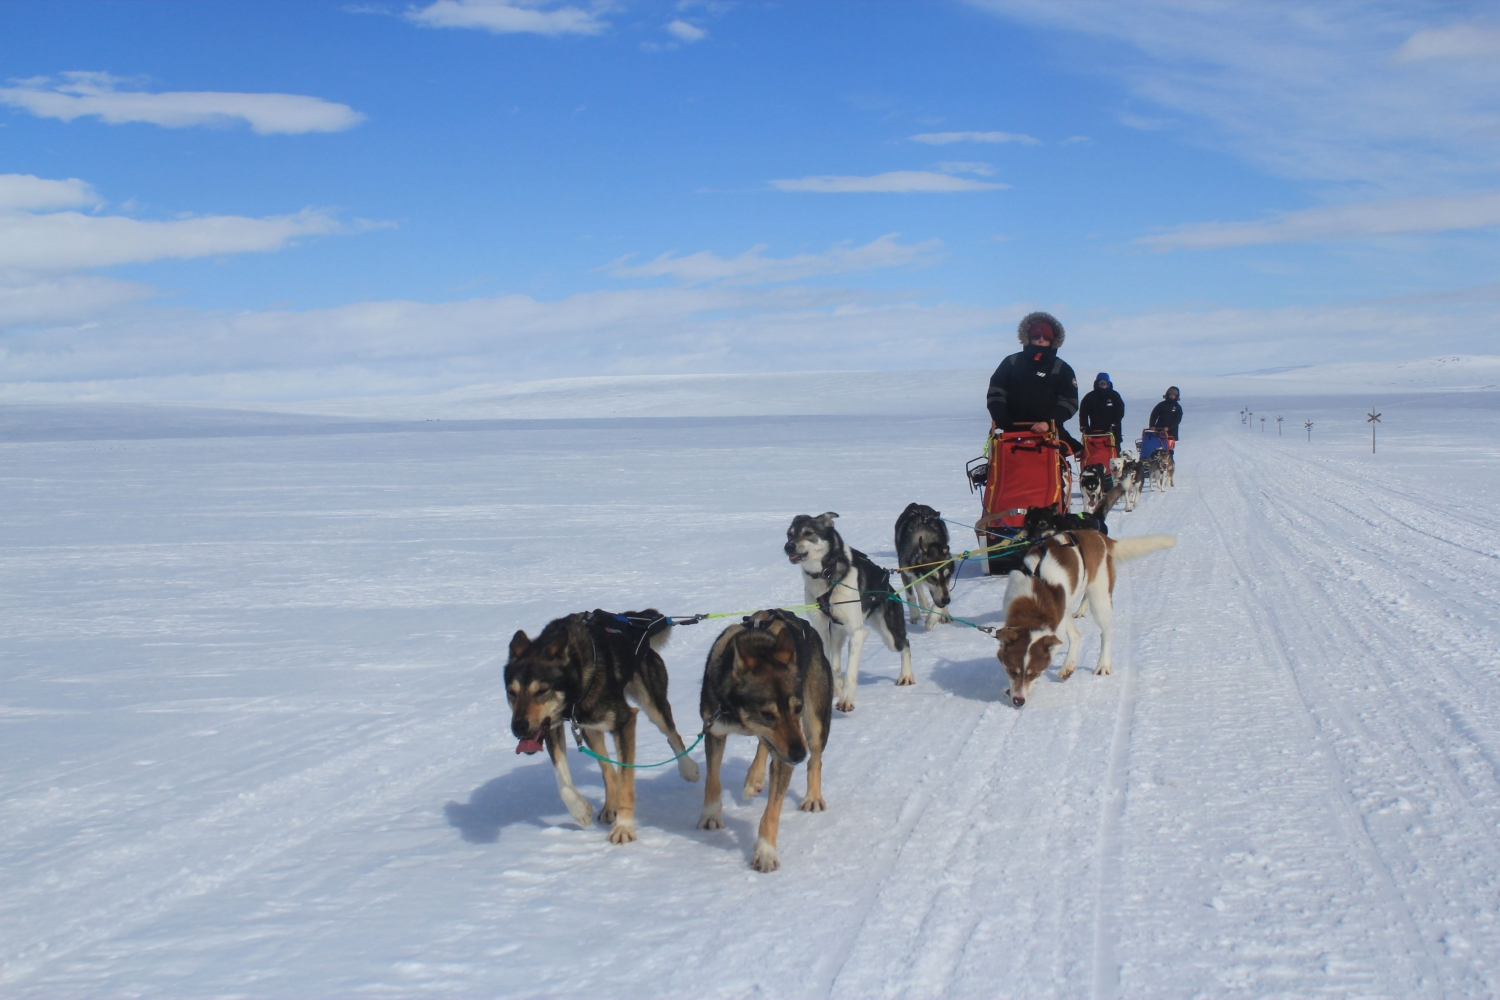 Dog sledding on snowy landscape